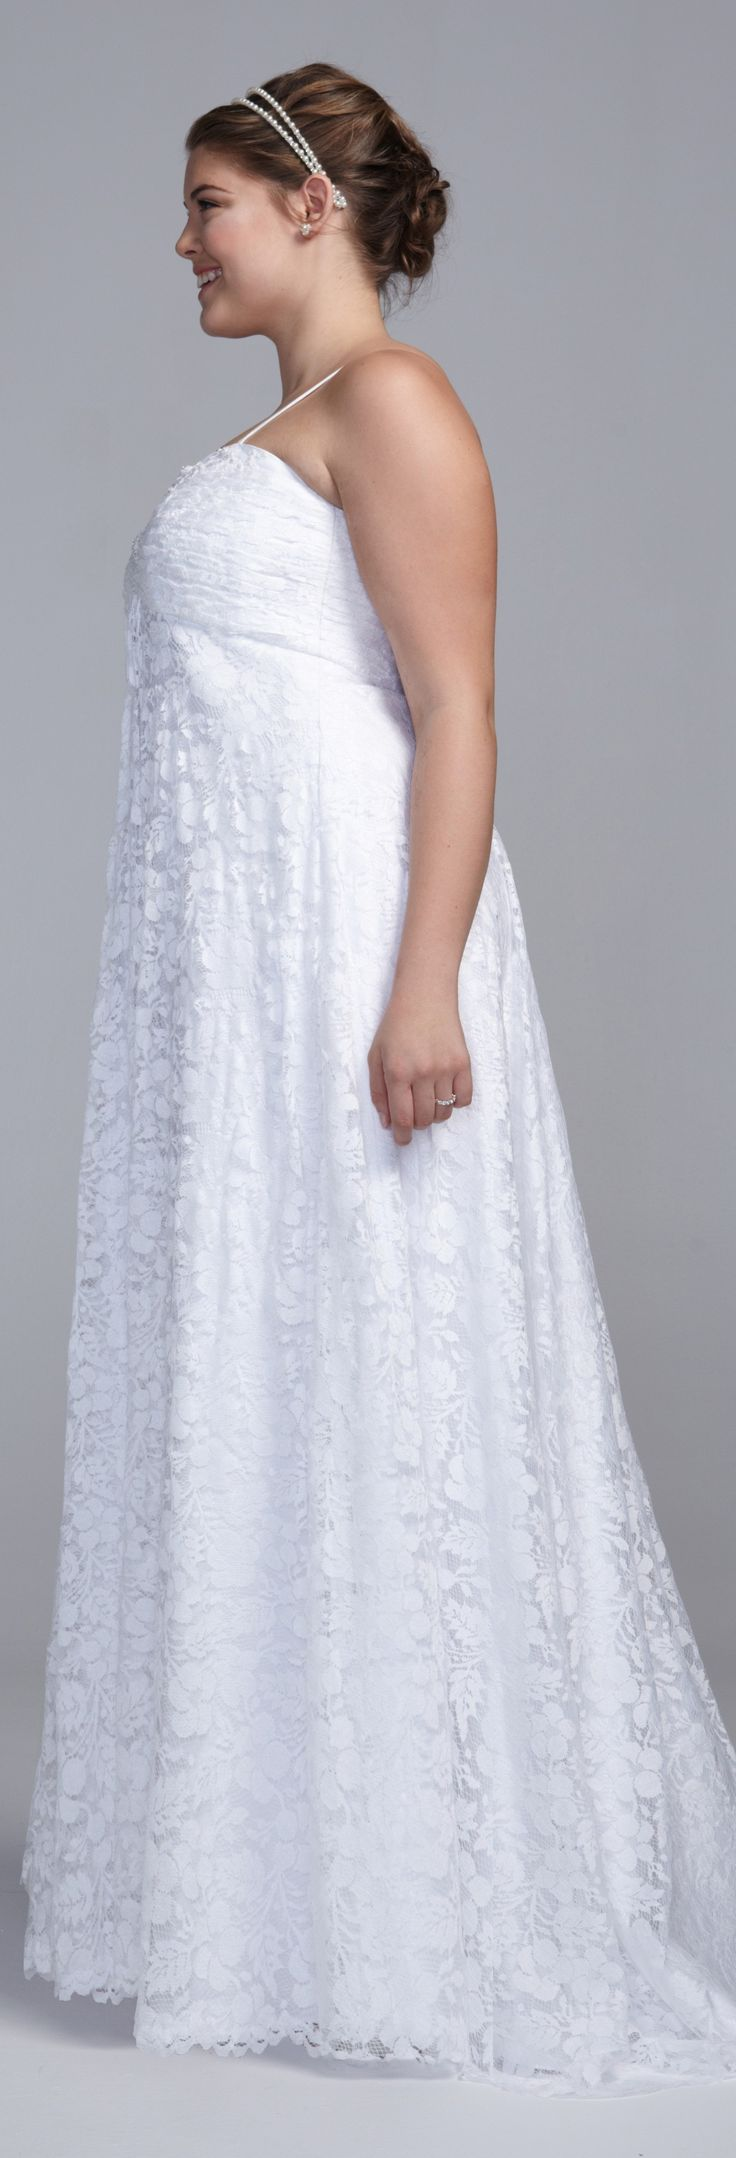 Dear apple-shaped women, check out your wedding dress from the side before buying it... And read this article... http://www.boomerinas.com/2014/10/08/wedding-dresses-for-your-body-type-apple-shapes-plus-size-tummies/